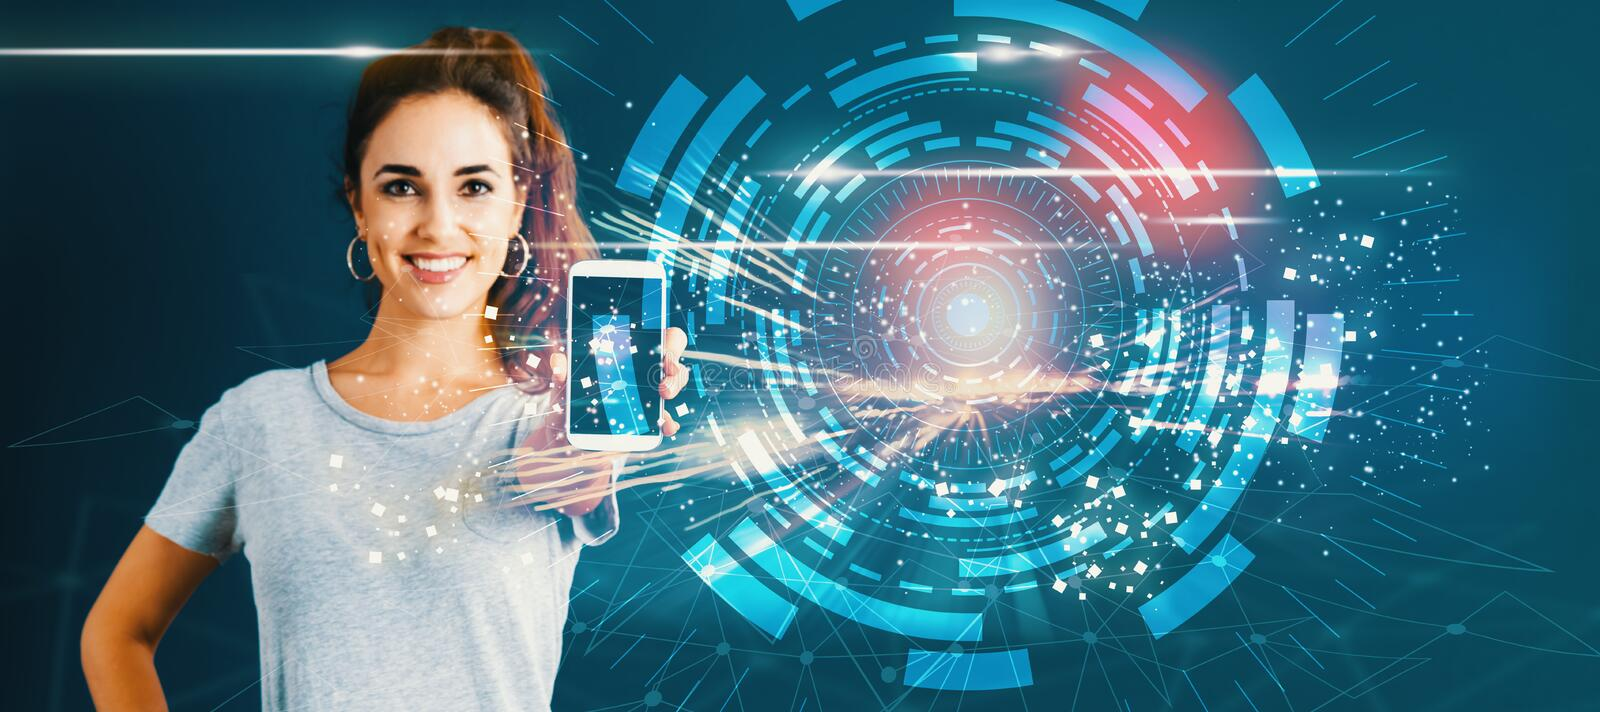 Digital Tech Circle with young woman holding out a smartphone stock image